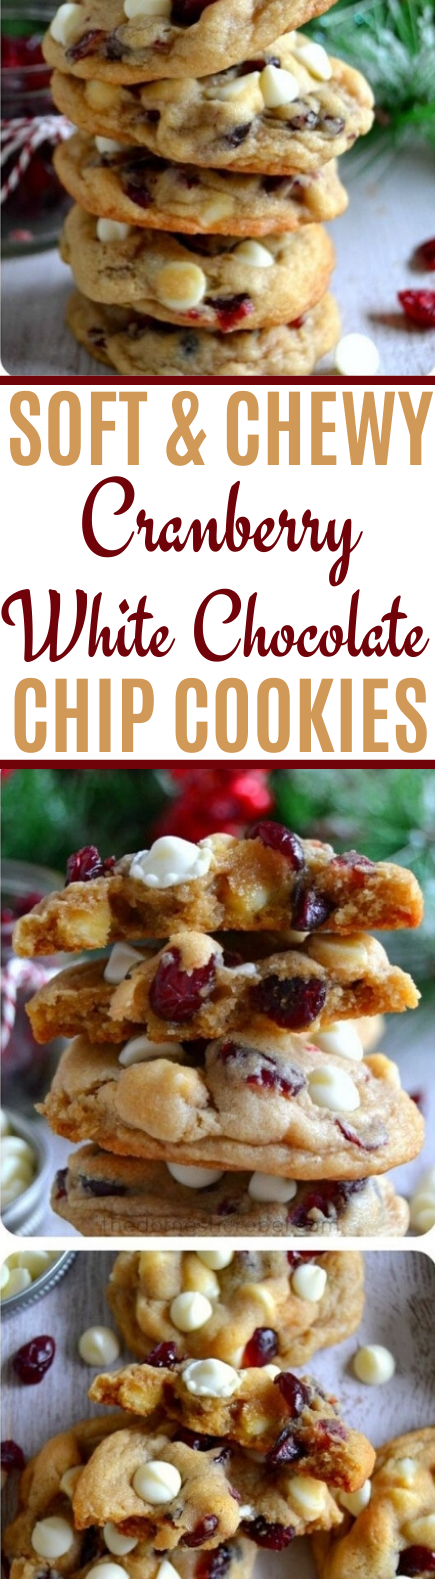 The BEST Soft &  Chewy Cranberry White Chocolate Chip Cookies #christmas #cookies #recipes #baking #desserts